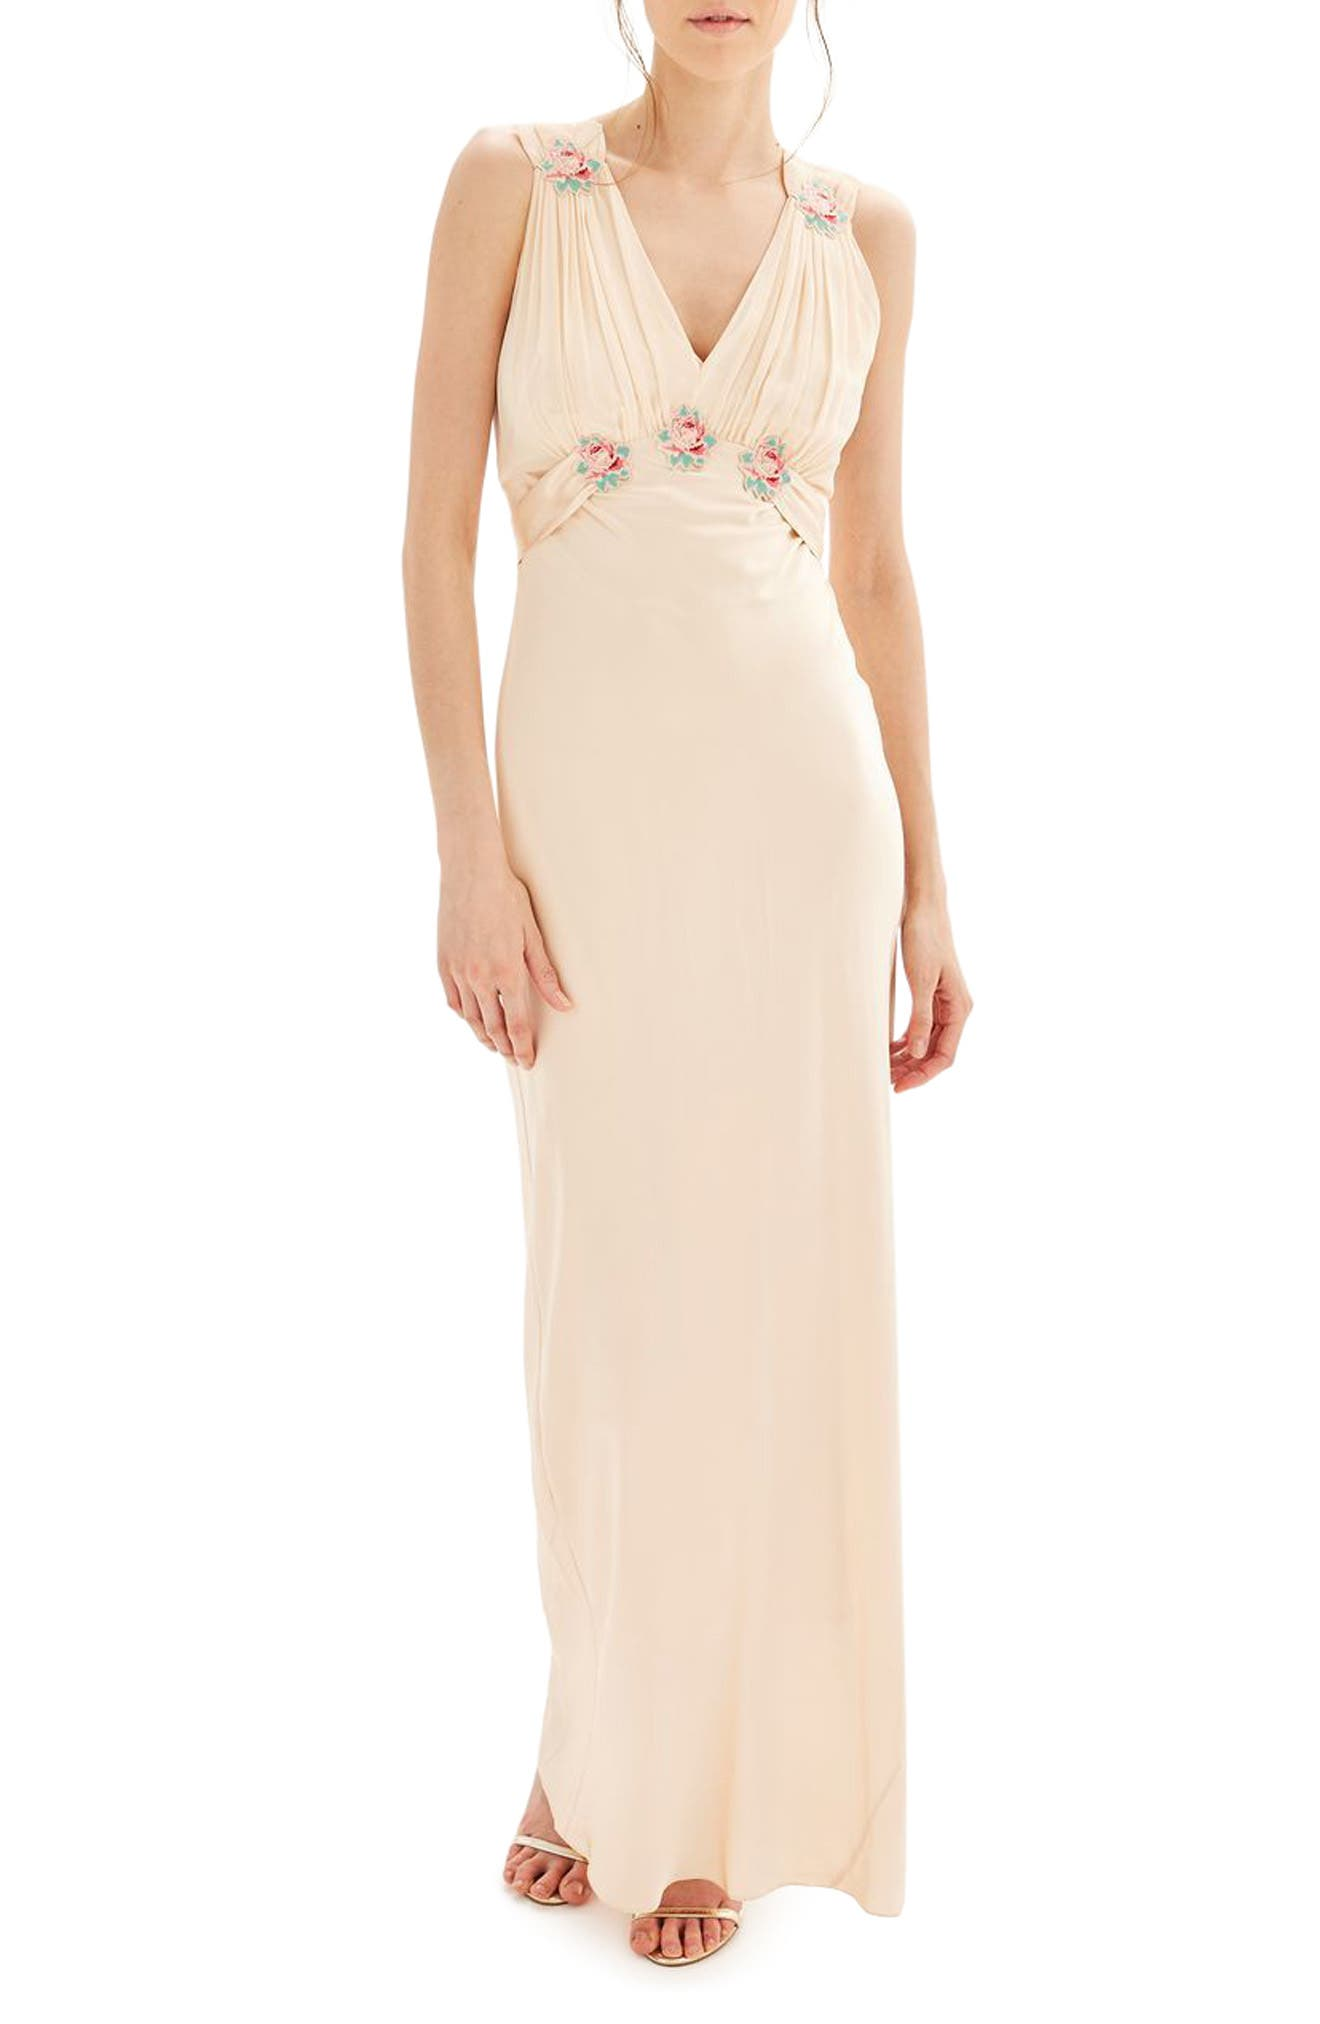 Topshop Bride Embroidered Silk Gown